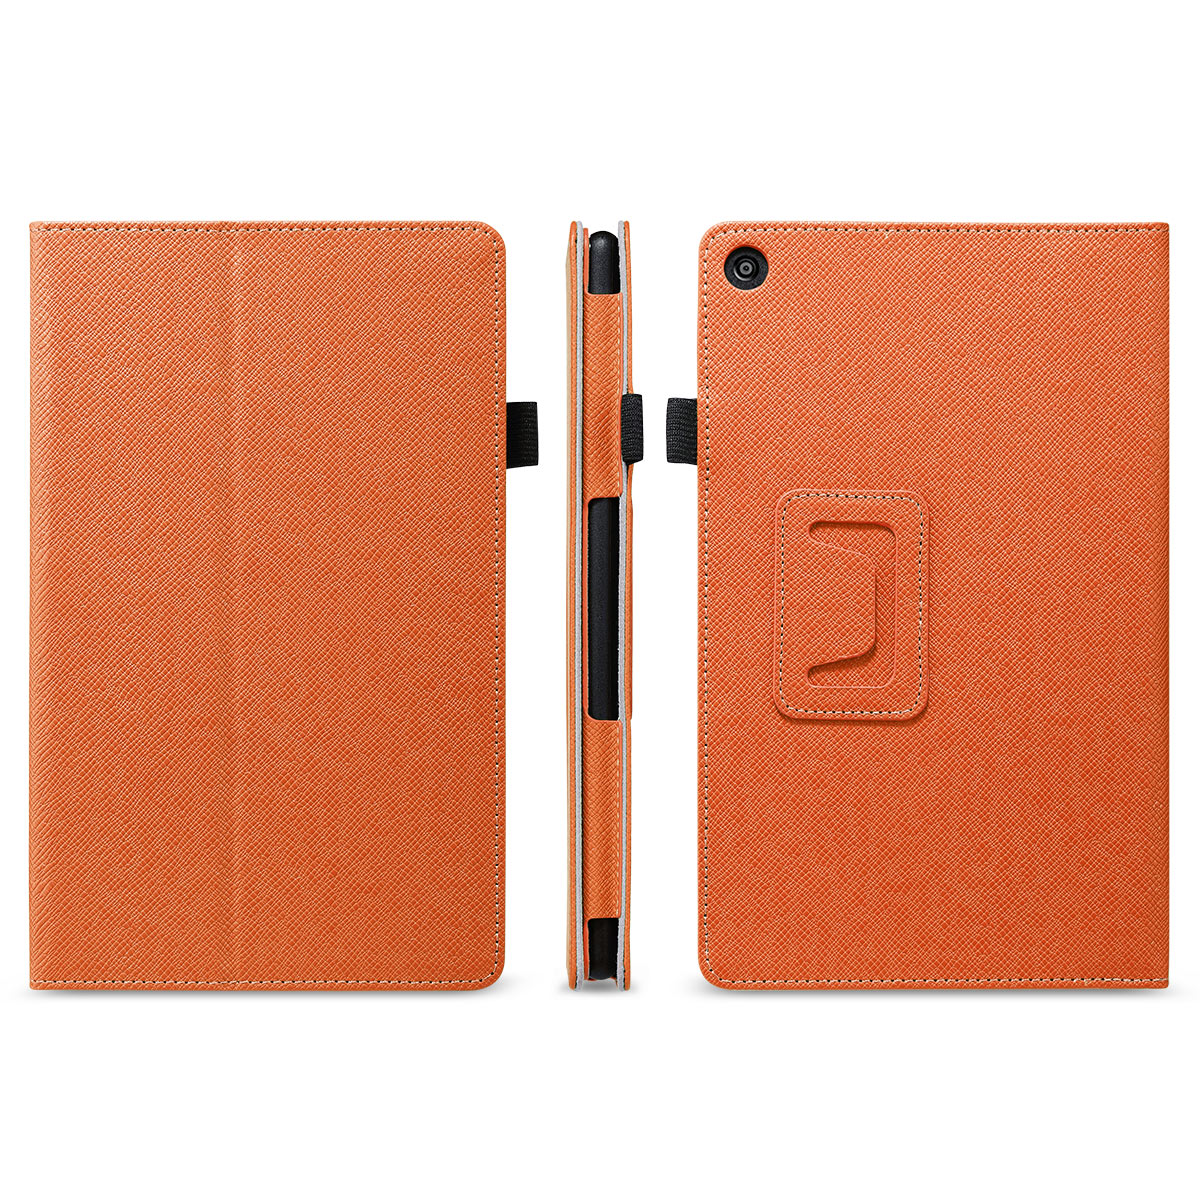 Flip-Wallet-Leather-Case-Cover-For-All-New-Amazon-Fire-HD-8-2016-Release-6th-Gen thumbnail 47